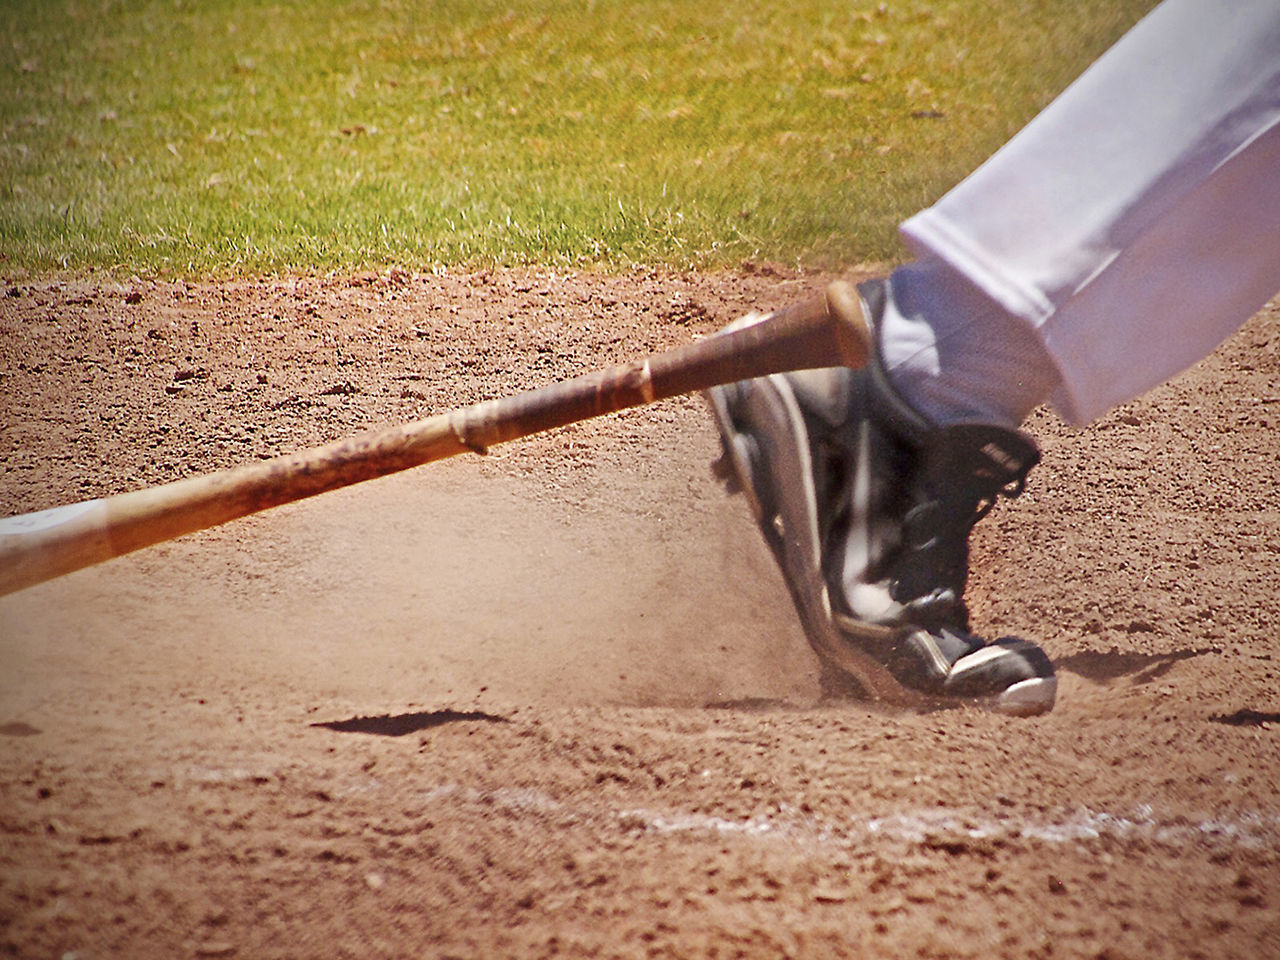 Baseball Bat Baseball Cleat Baseball Field Baseball Game Competition Dirt Dropped Bat Outdoors